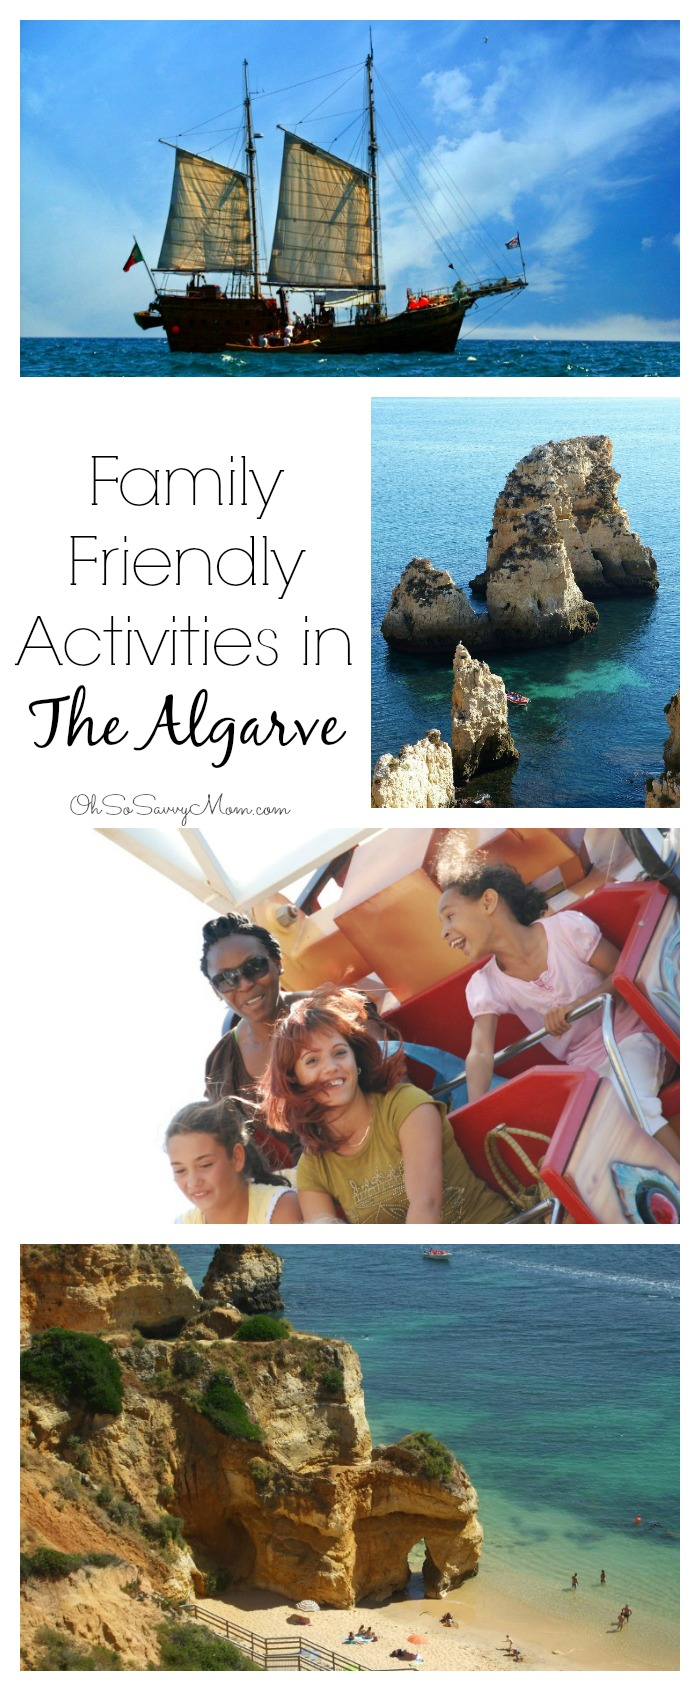 Family Friendly Activities in The Algarve